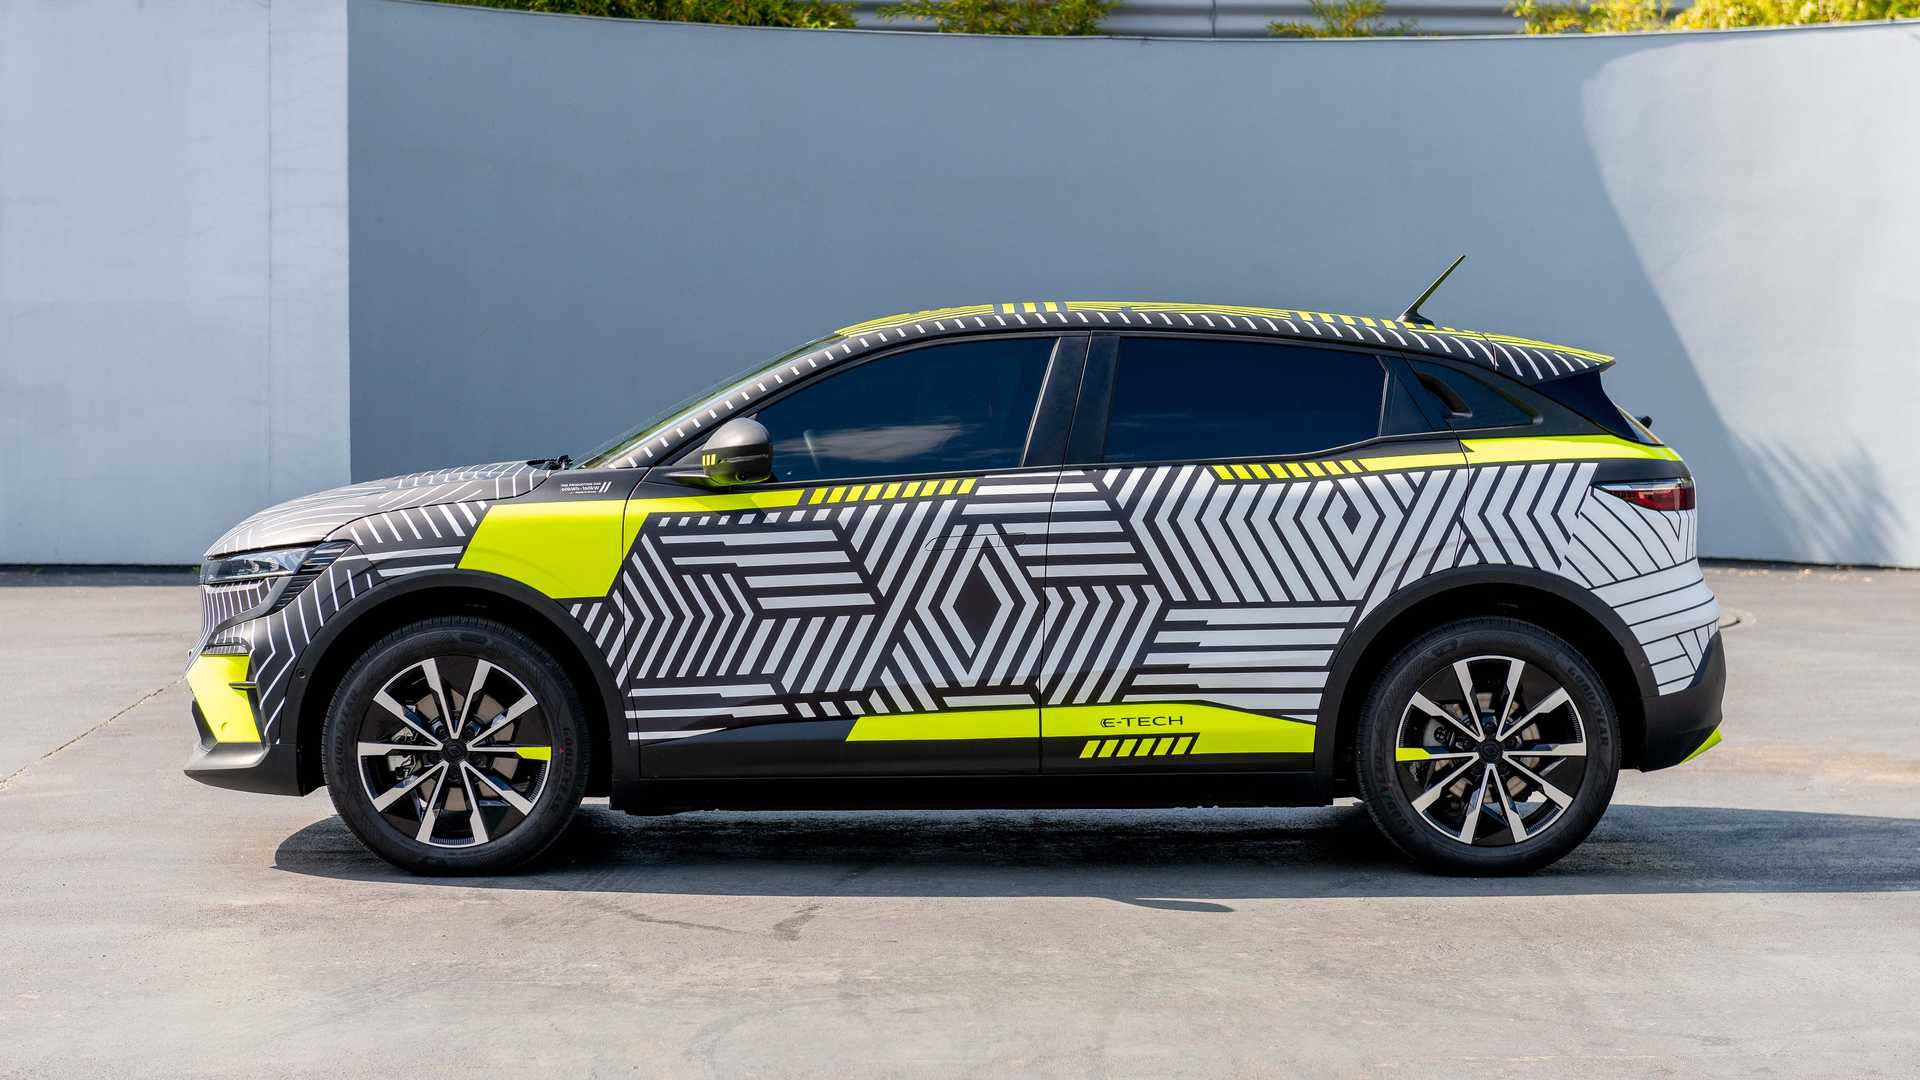 The Renault Megane E-Type electric hatchback gives a liquid look on the outside.